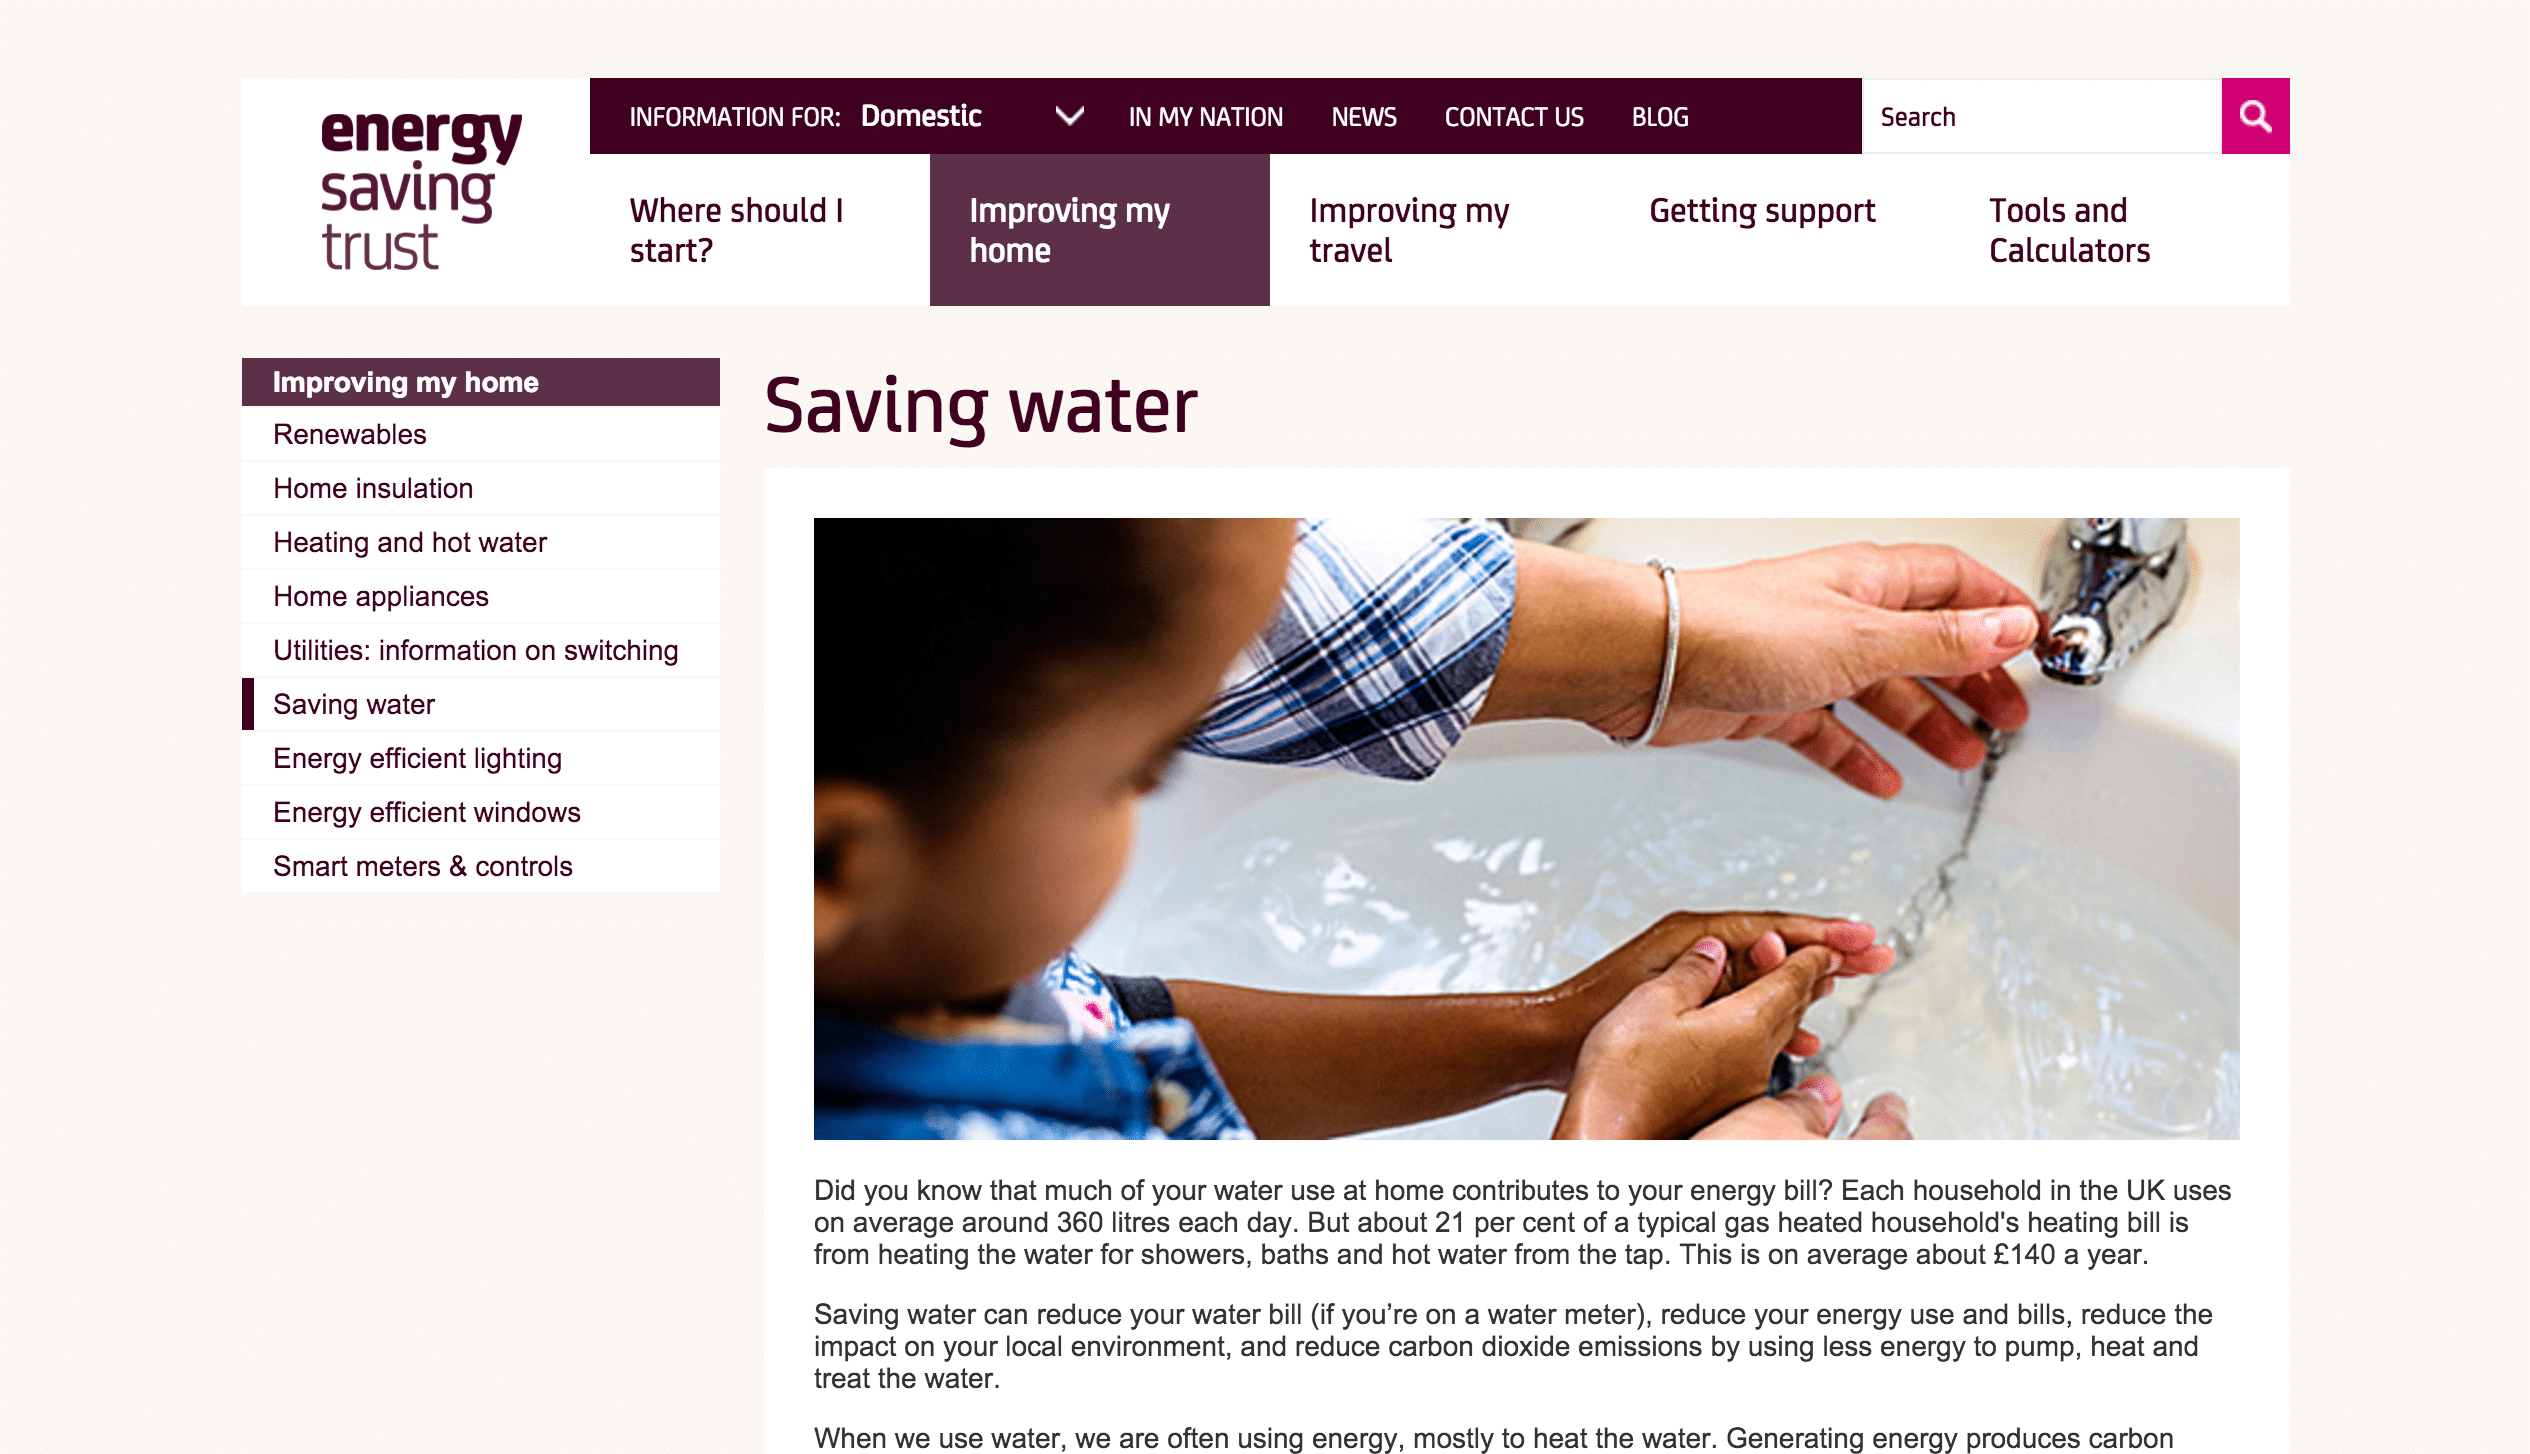 Energy Saving Trust information page